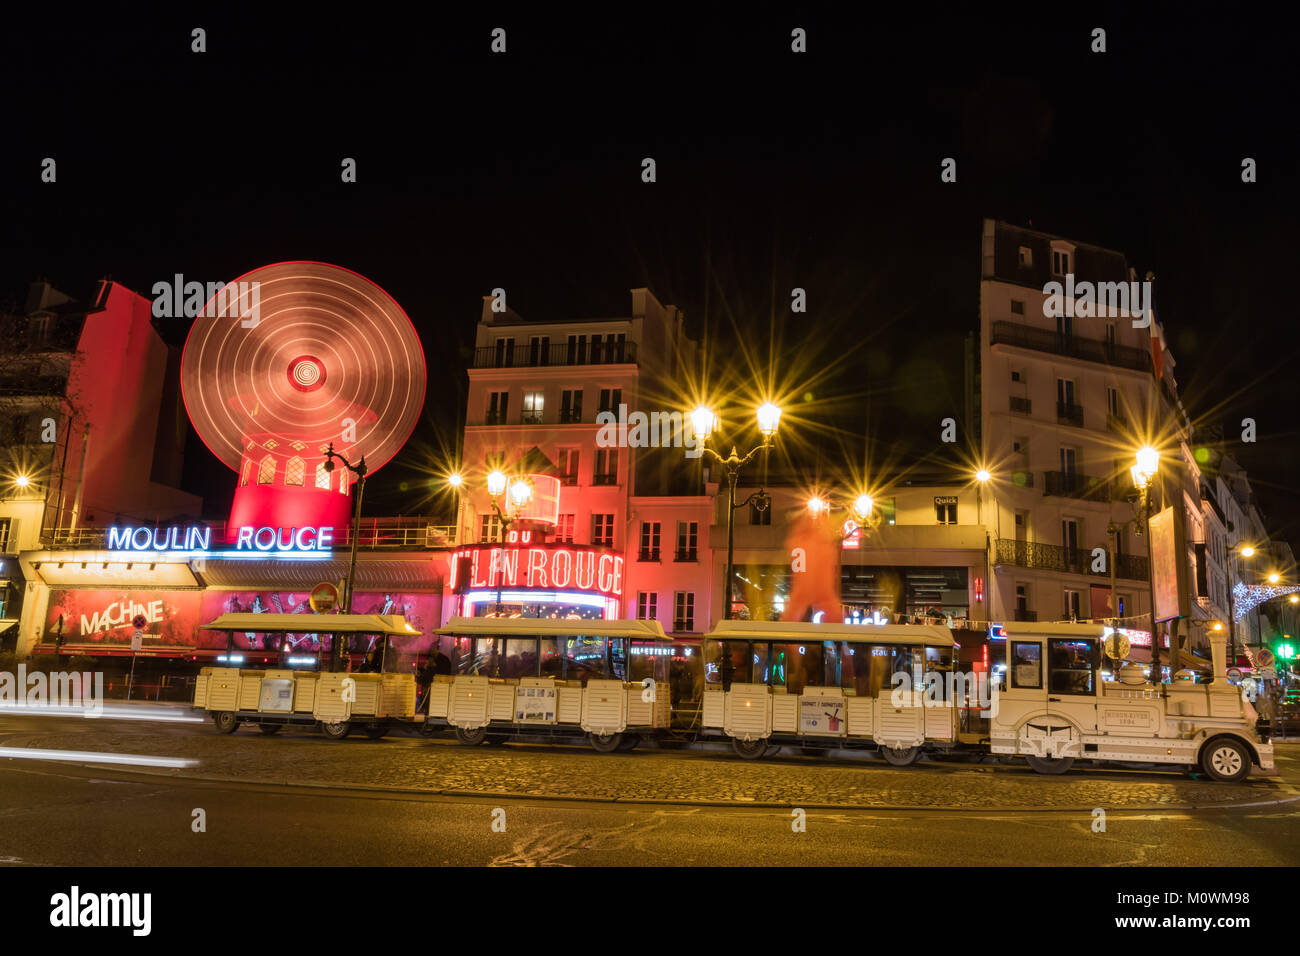 Moulin Rouge and Pigalle place in Paris - Stock Image